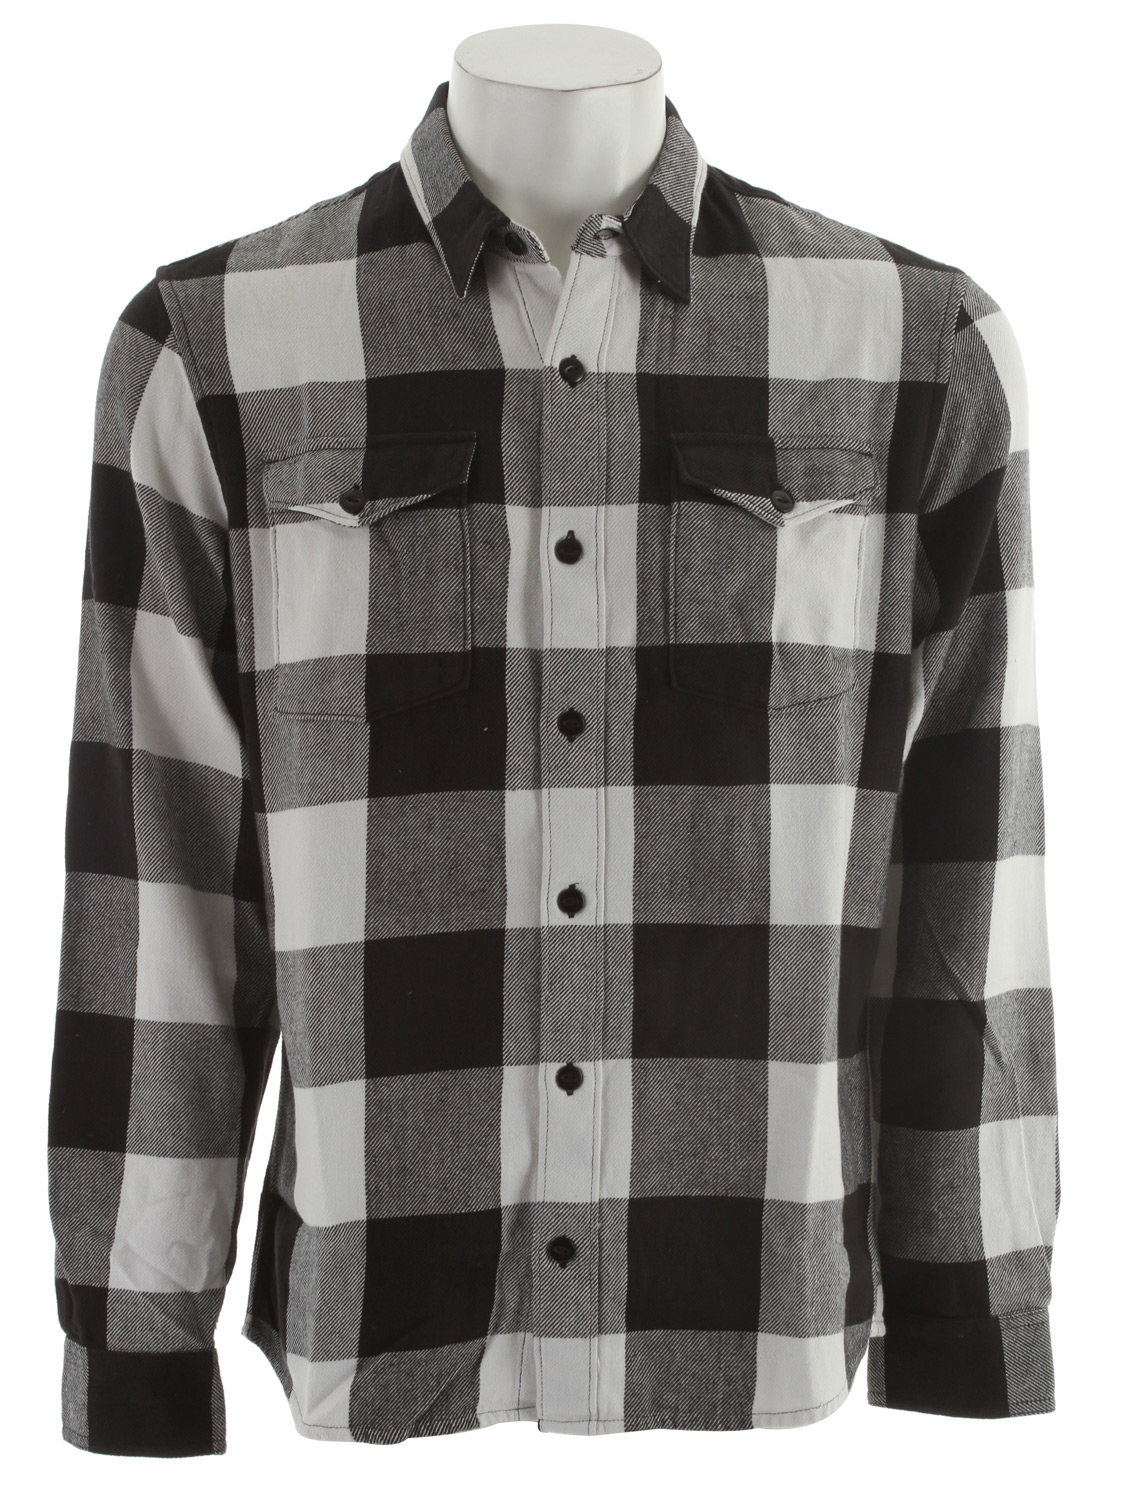 Skateboard Key Features of the DC Soldier L/S Shirt: Button down collared shirt Flannel - $24.95